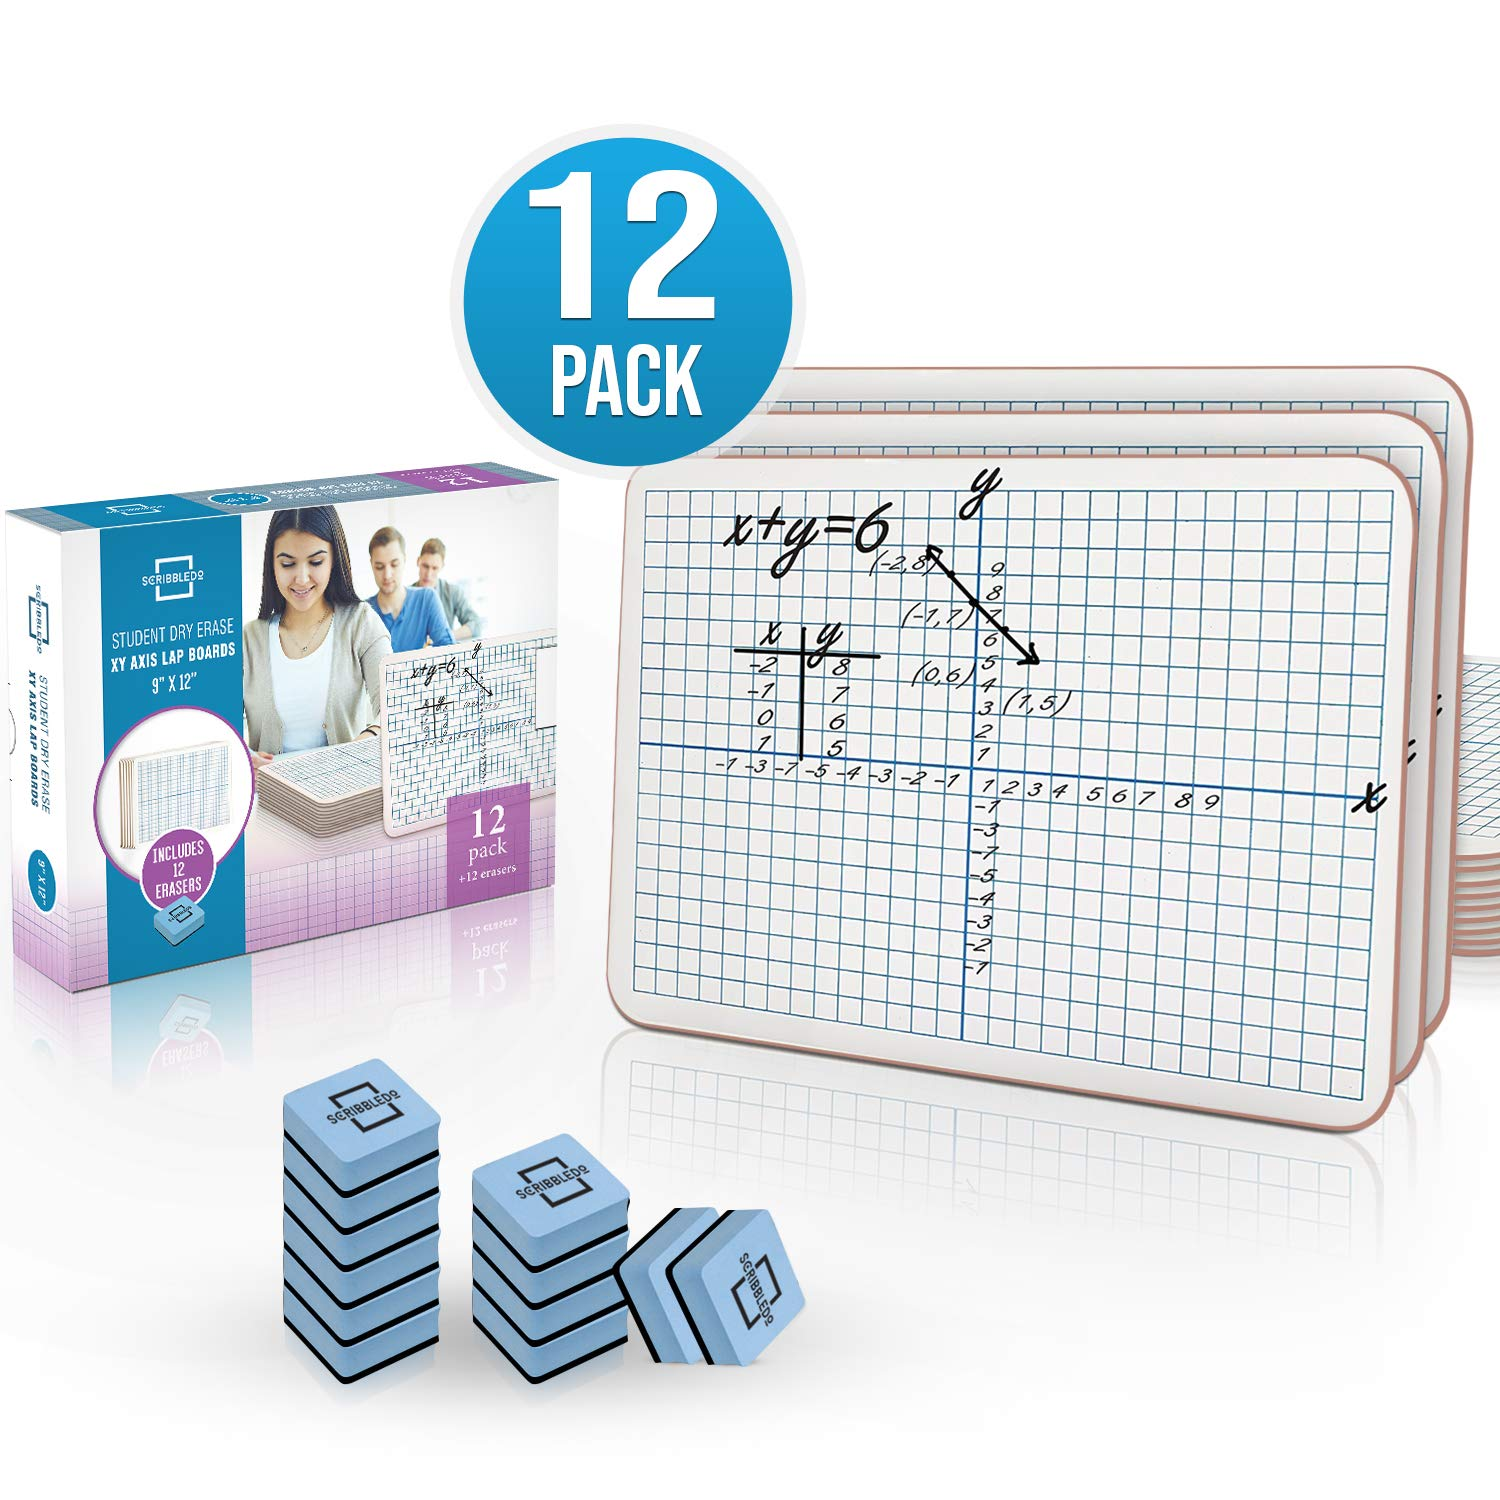 12 Pack Dry Erase XY Axis Graph Lap Board 9''X12'' | Interactive Learning Coordinate Grid Whiteboard | for Student and Classroom Use, Math Board (Double Sided White Boards) Erasers Included